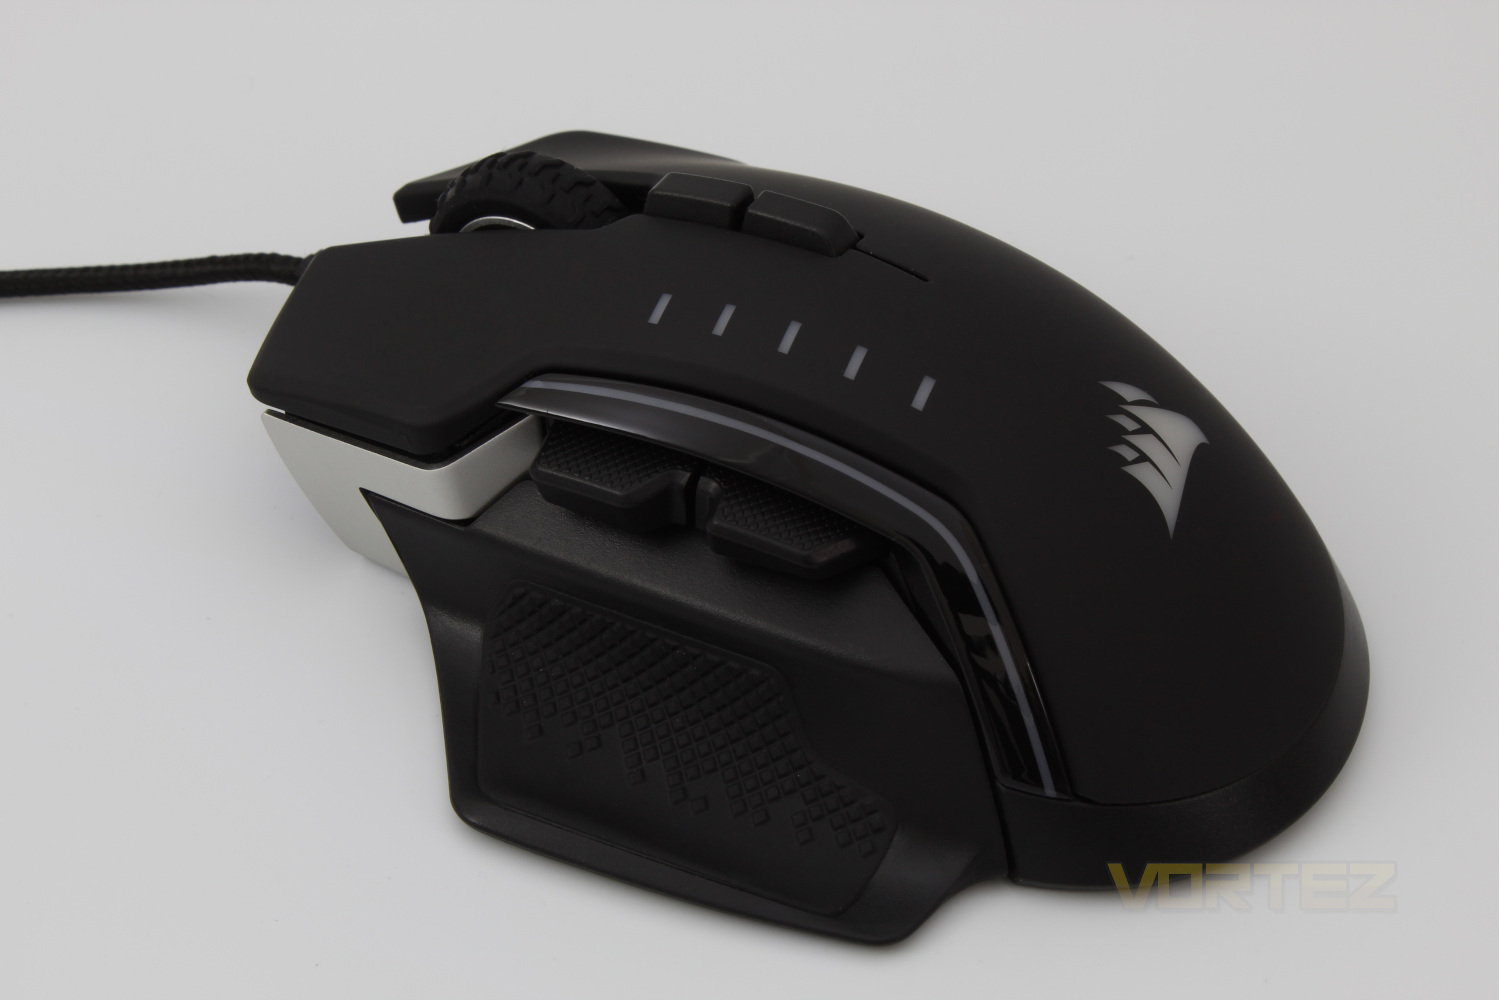 corsair_glaive_rgb_pro_mouse_intro.jpg